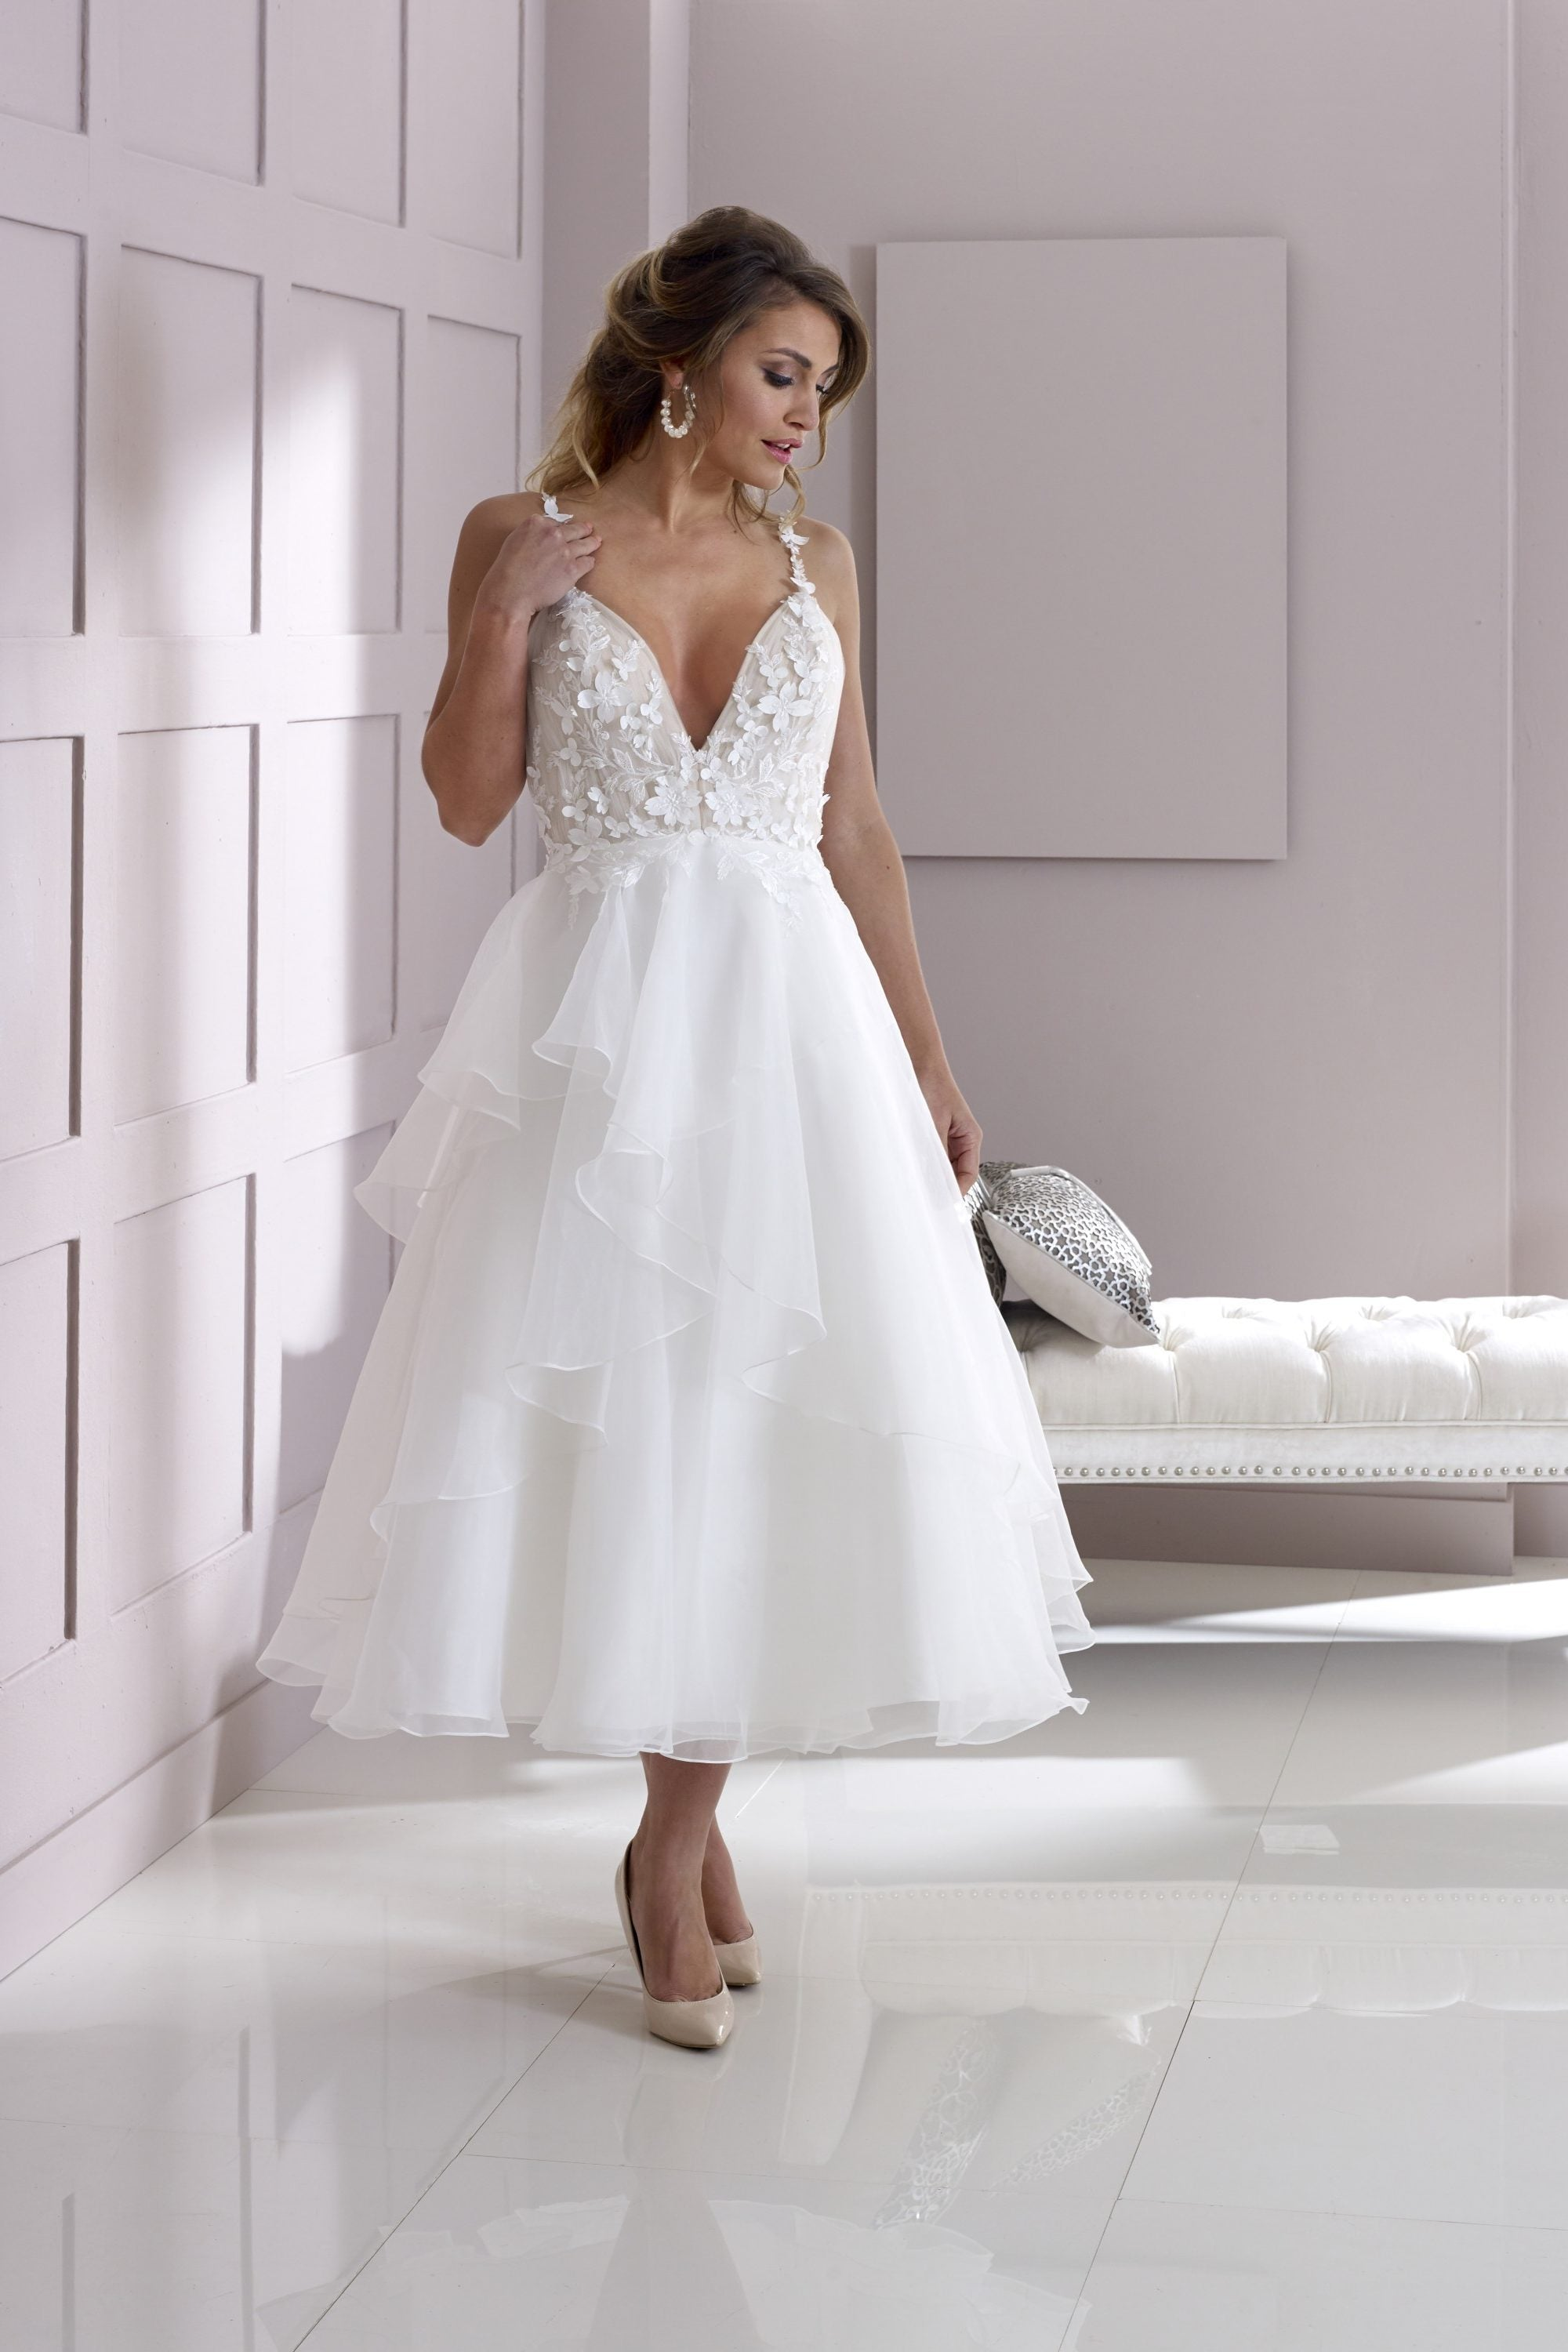 Organza and lace appliqué tea length bridal gown with tiered skirt and luxury floral petal details.